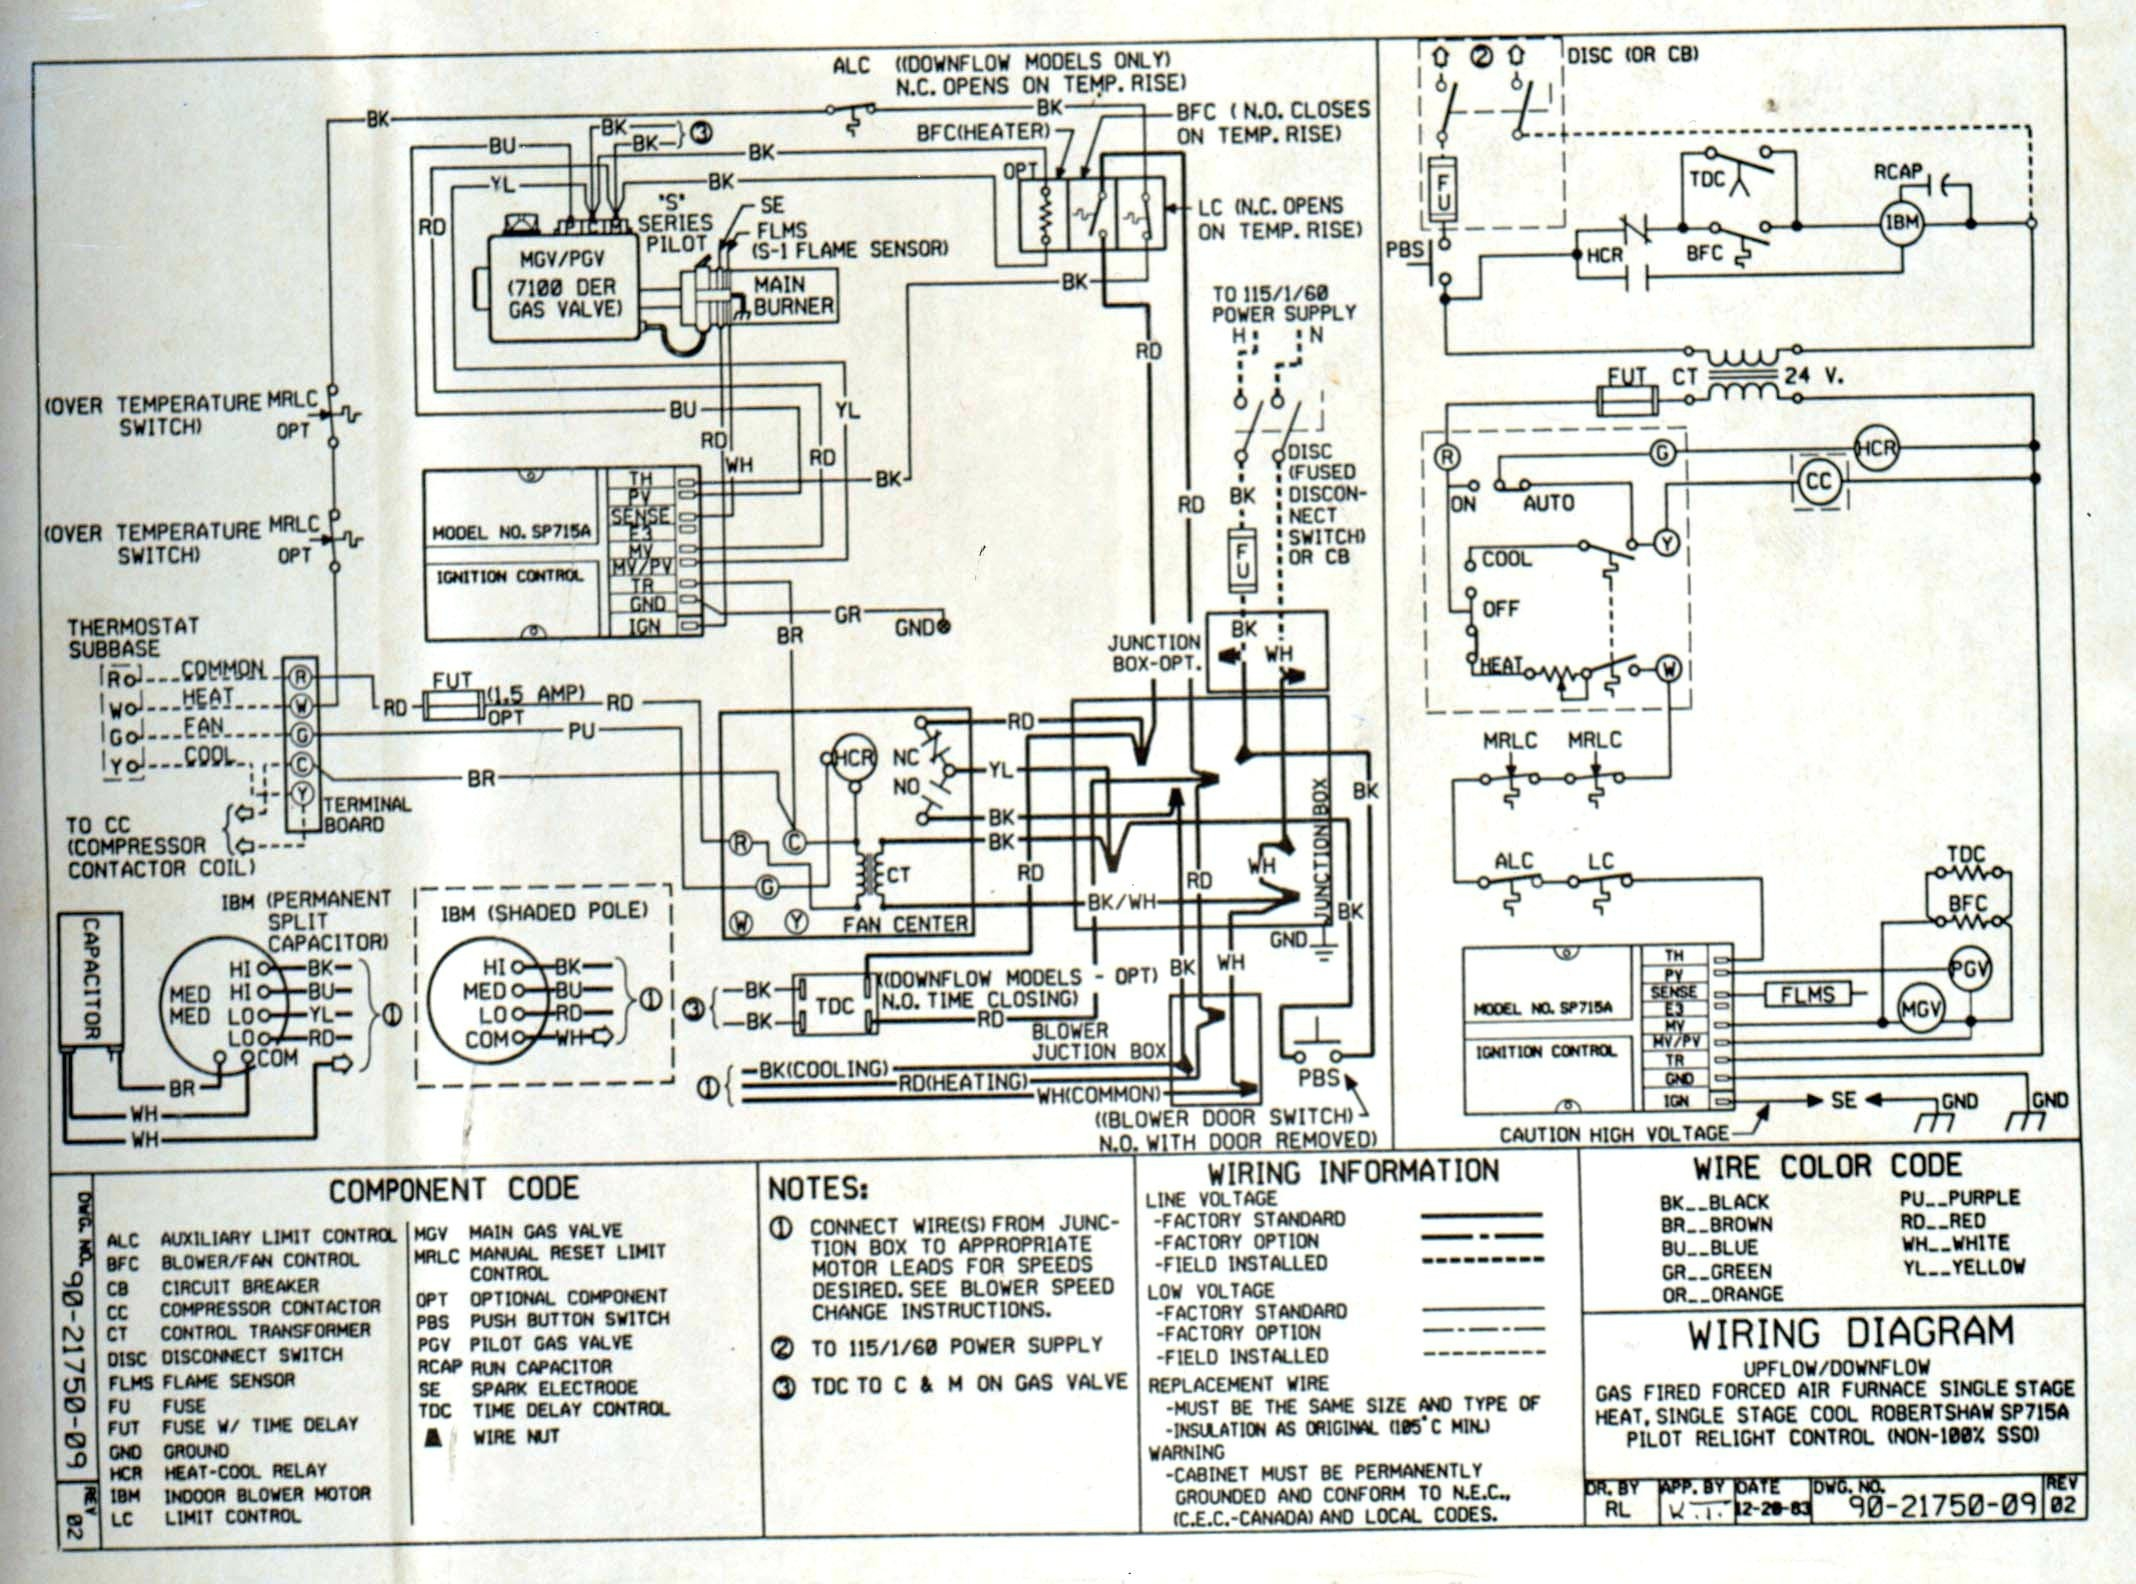 payne package unit wiring diagram Collection-Package Air Conditioning Unit Wiring Diagram Save Carrier Electric Furnace Wiring Diagrams for Payne Wiring Diagram 10-q